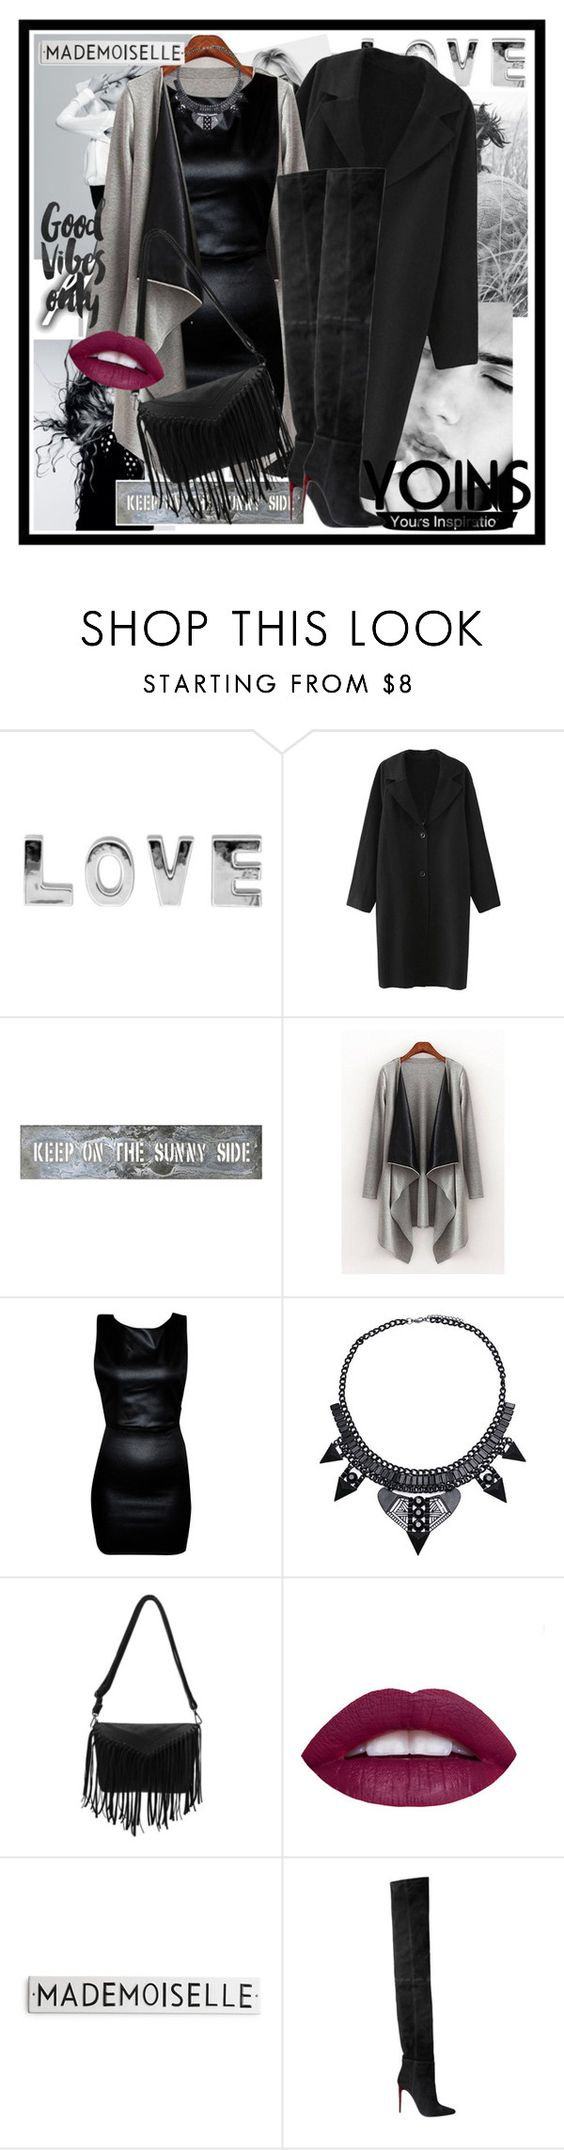 """""""Make it yours"""" by lucija ❤ liked on Polyvore featuring Magdalena, Sugarboo Designs, Balmain, women's clothing, women, female, woman, misses, juniors and yoinsandfollow"""